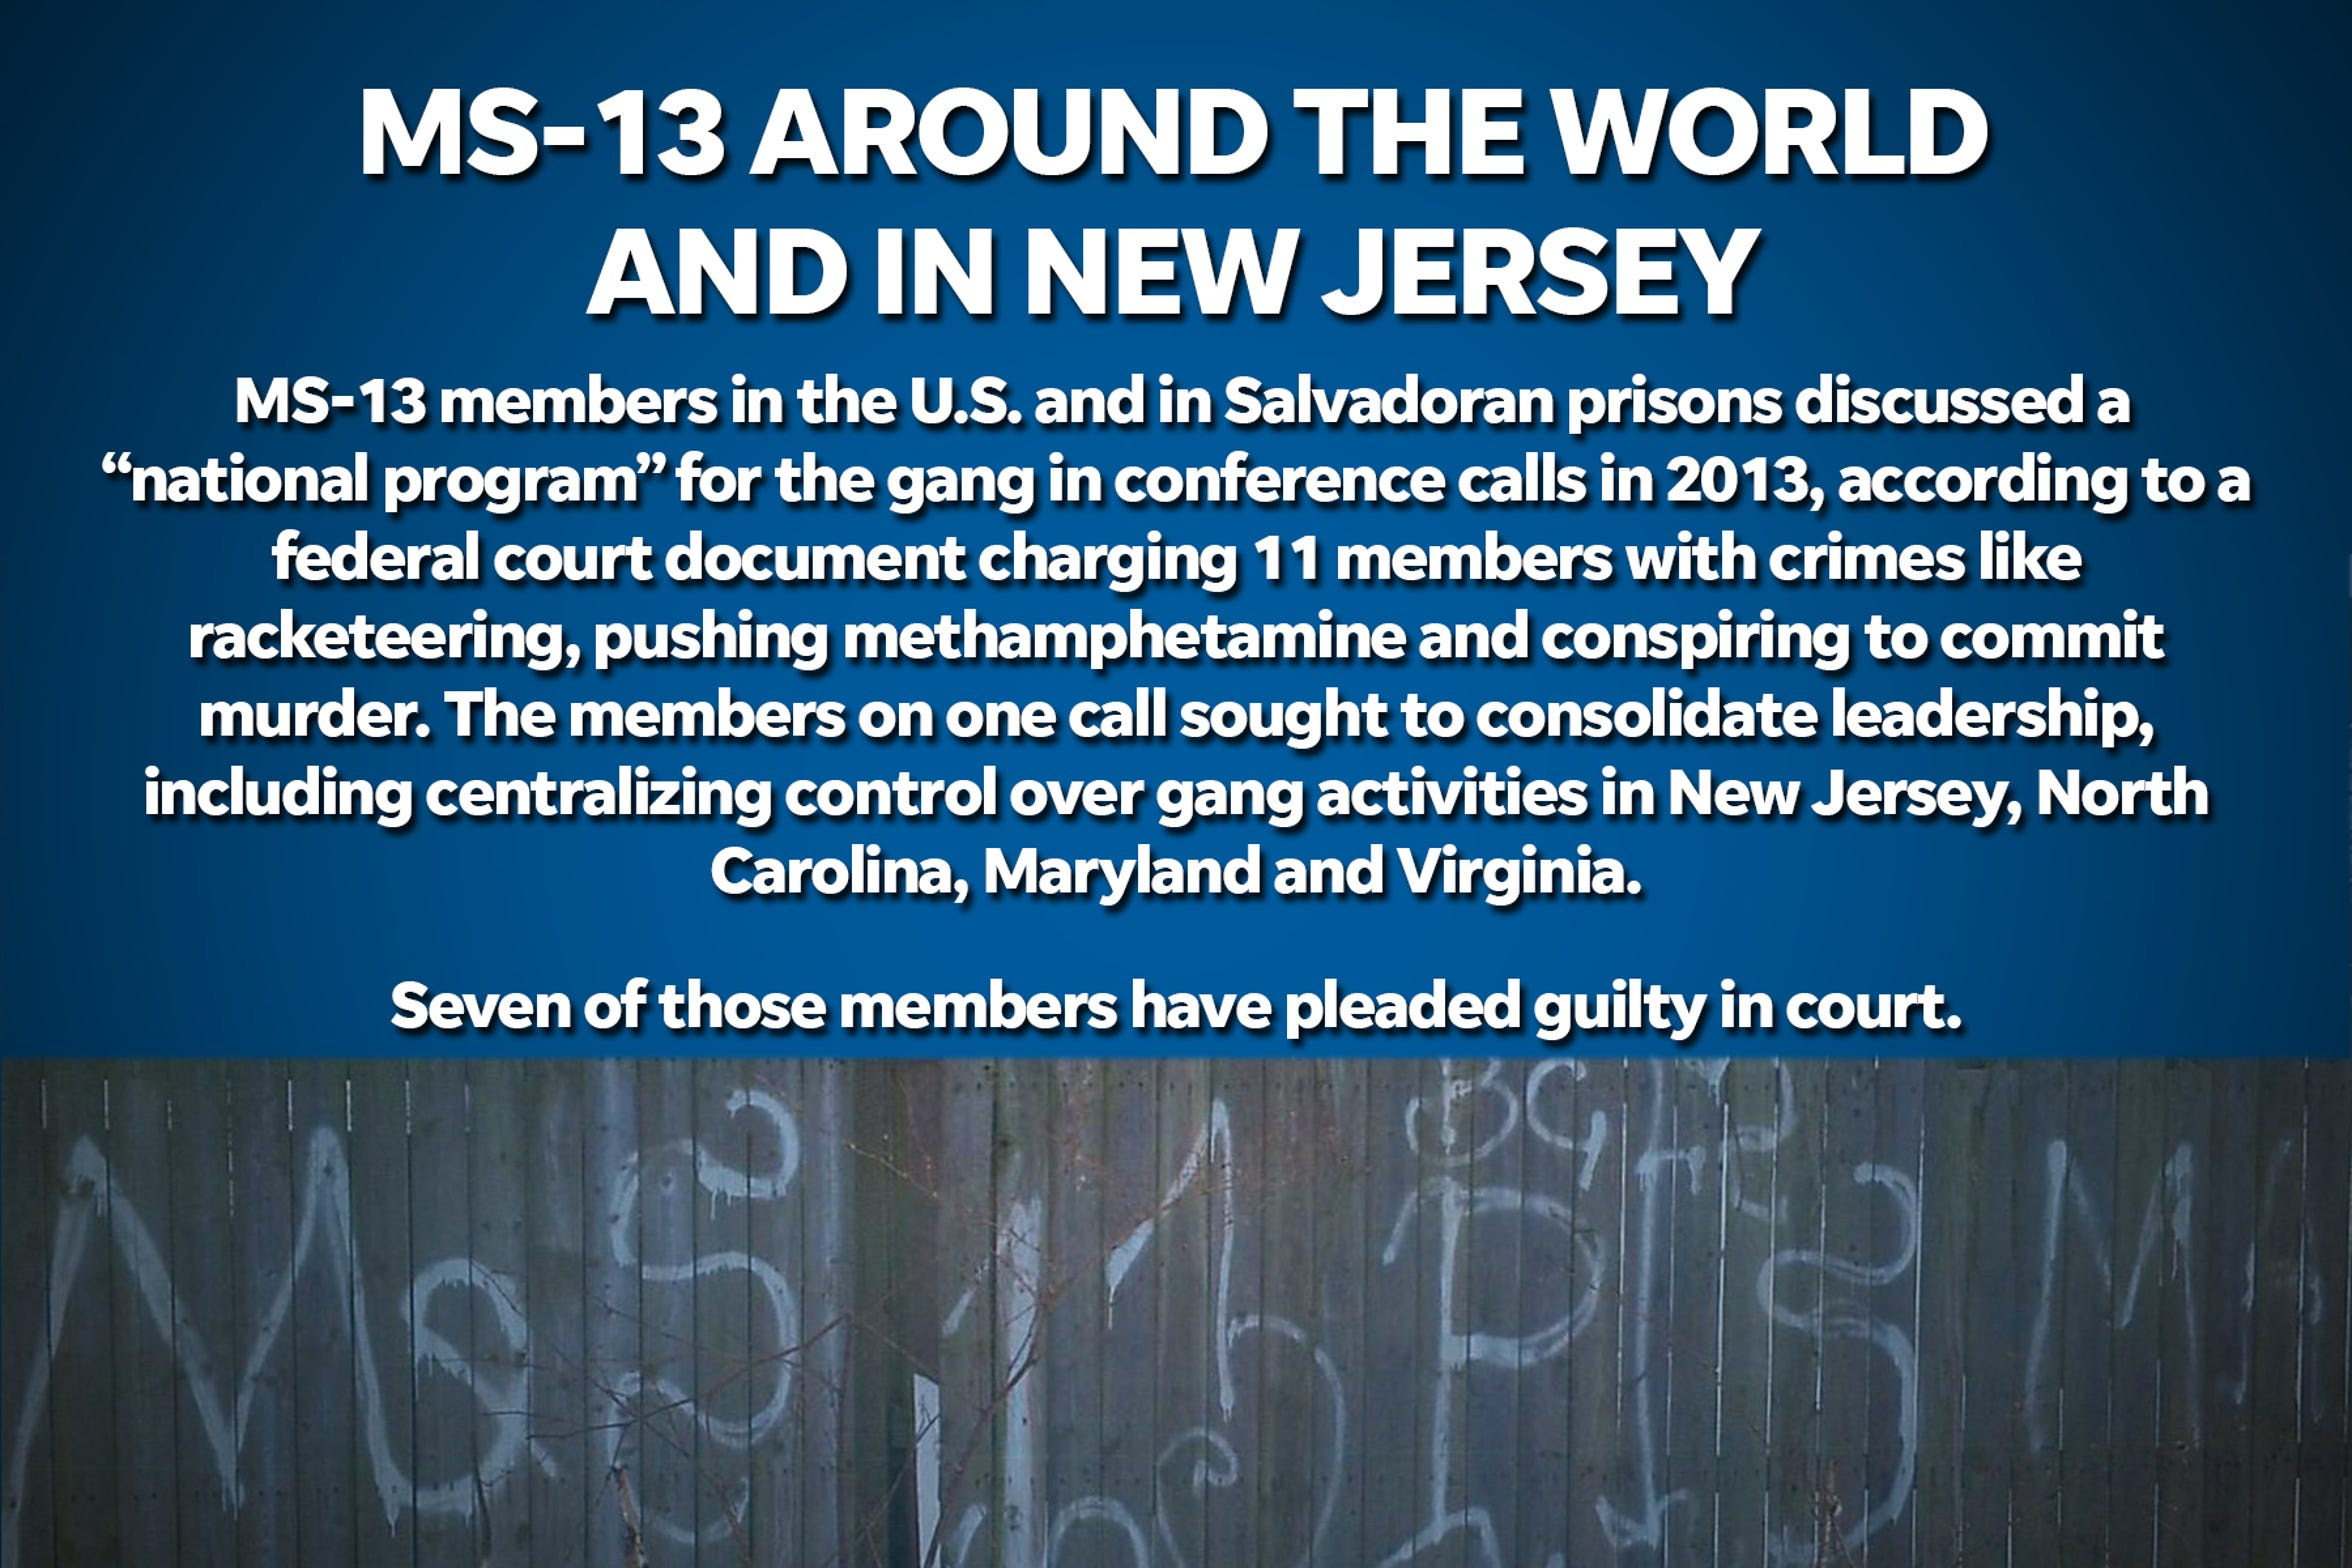 MS-13 organization reaches around the world.